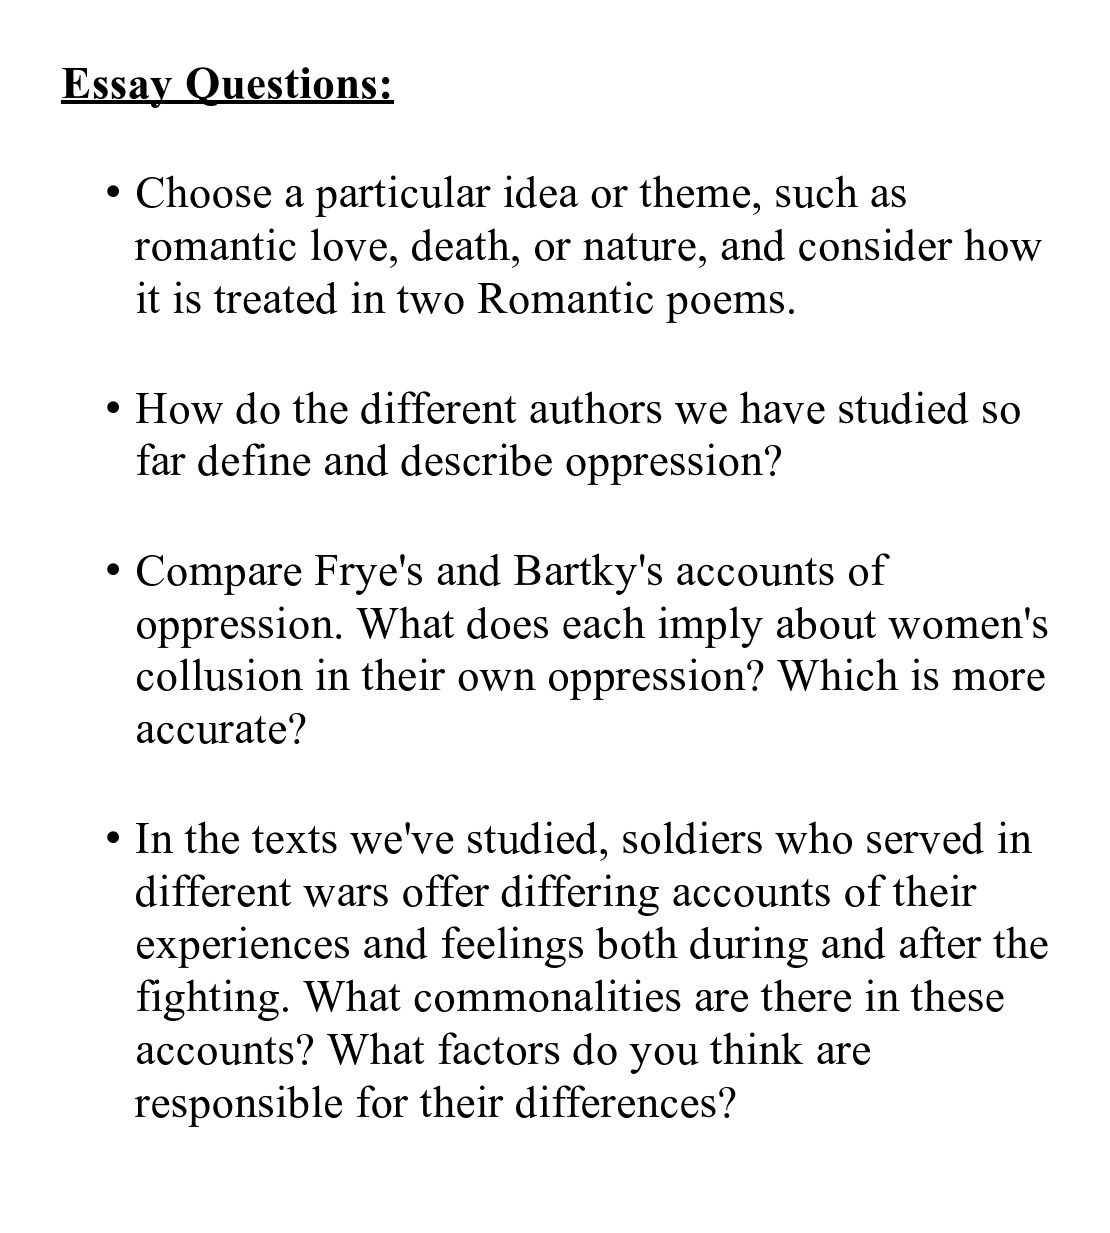 expository essays topics ideas for english essay fun persuasive expository essays topics ideas for english essay fun persuasive high school good topicoliver twist how